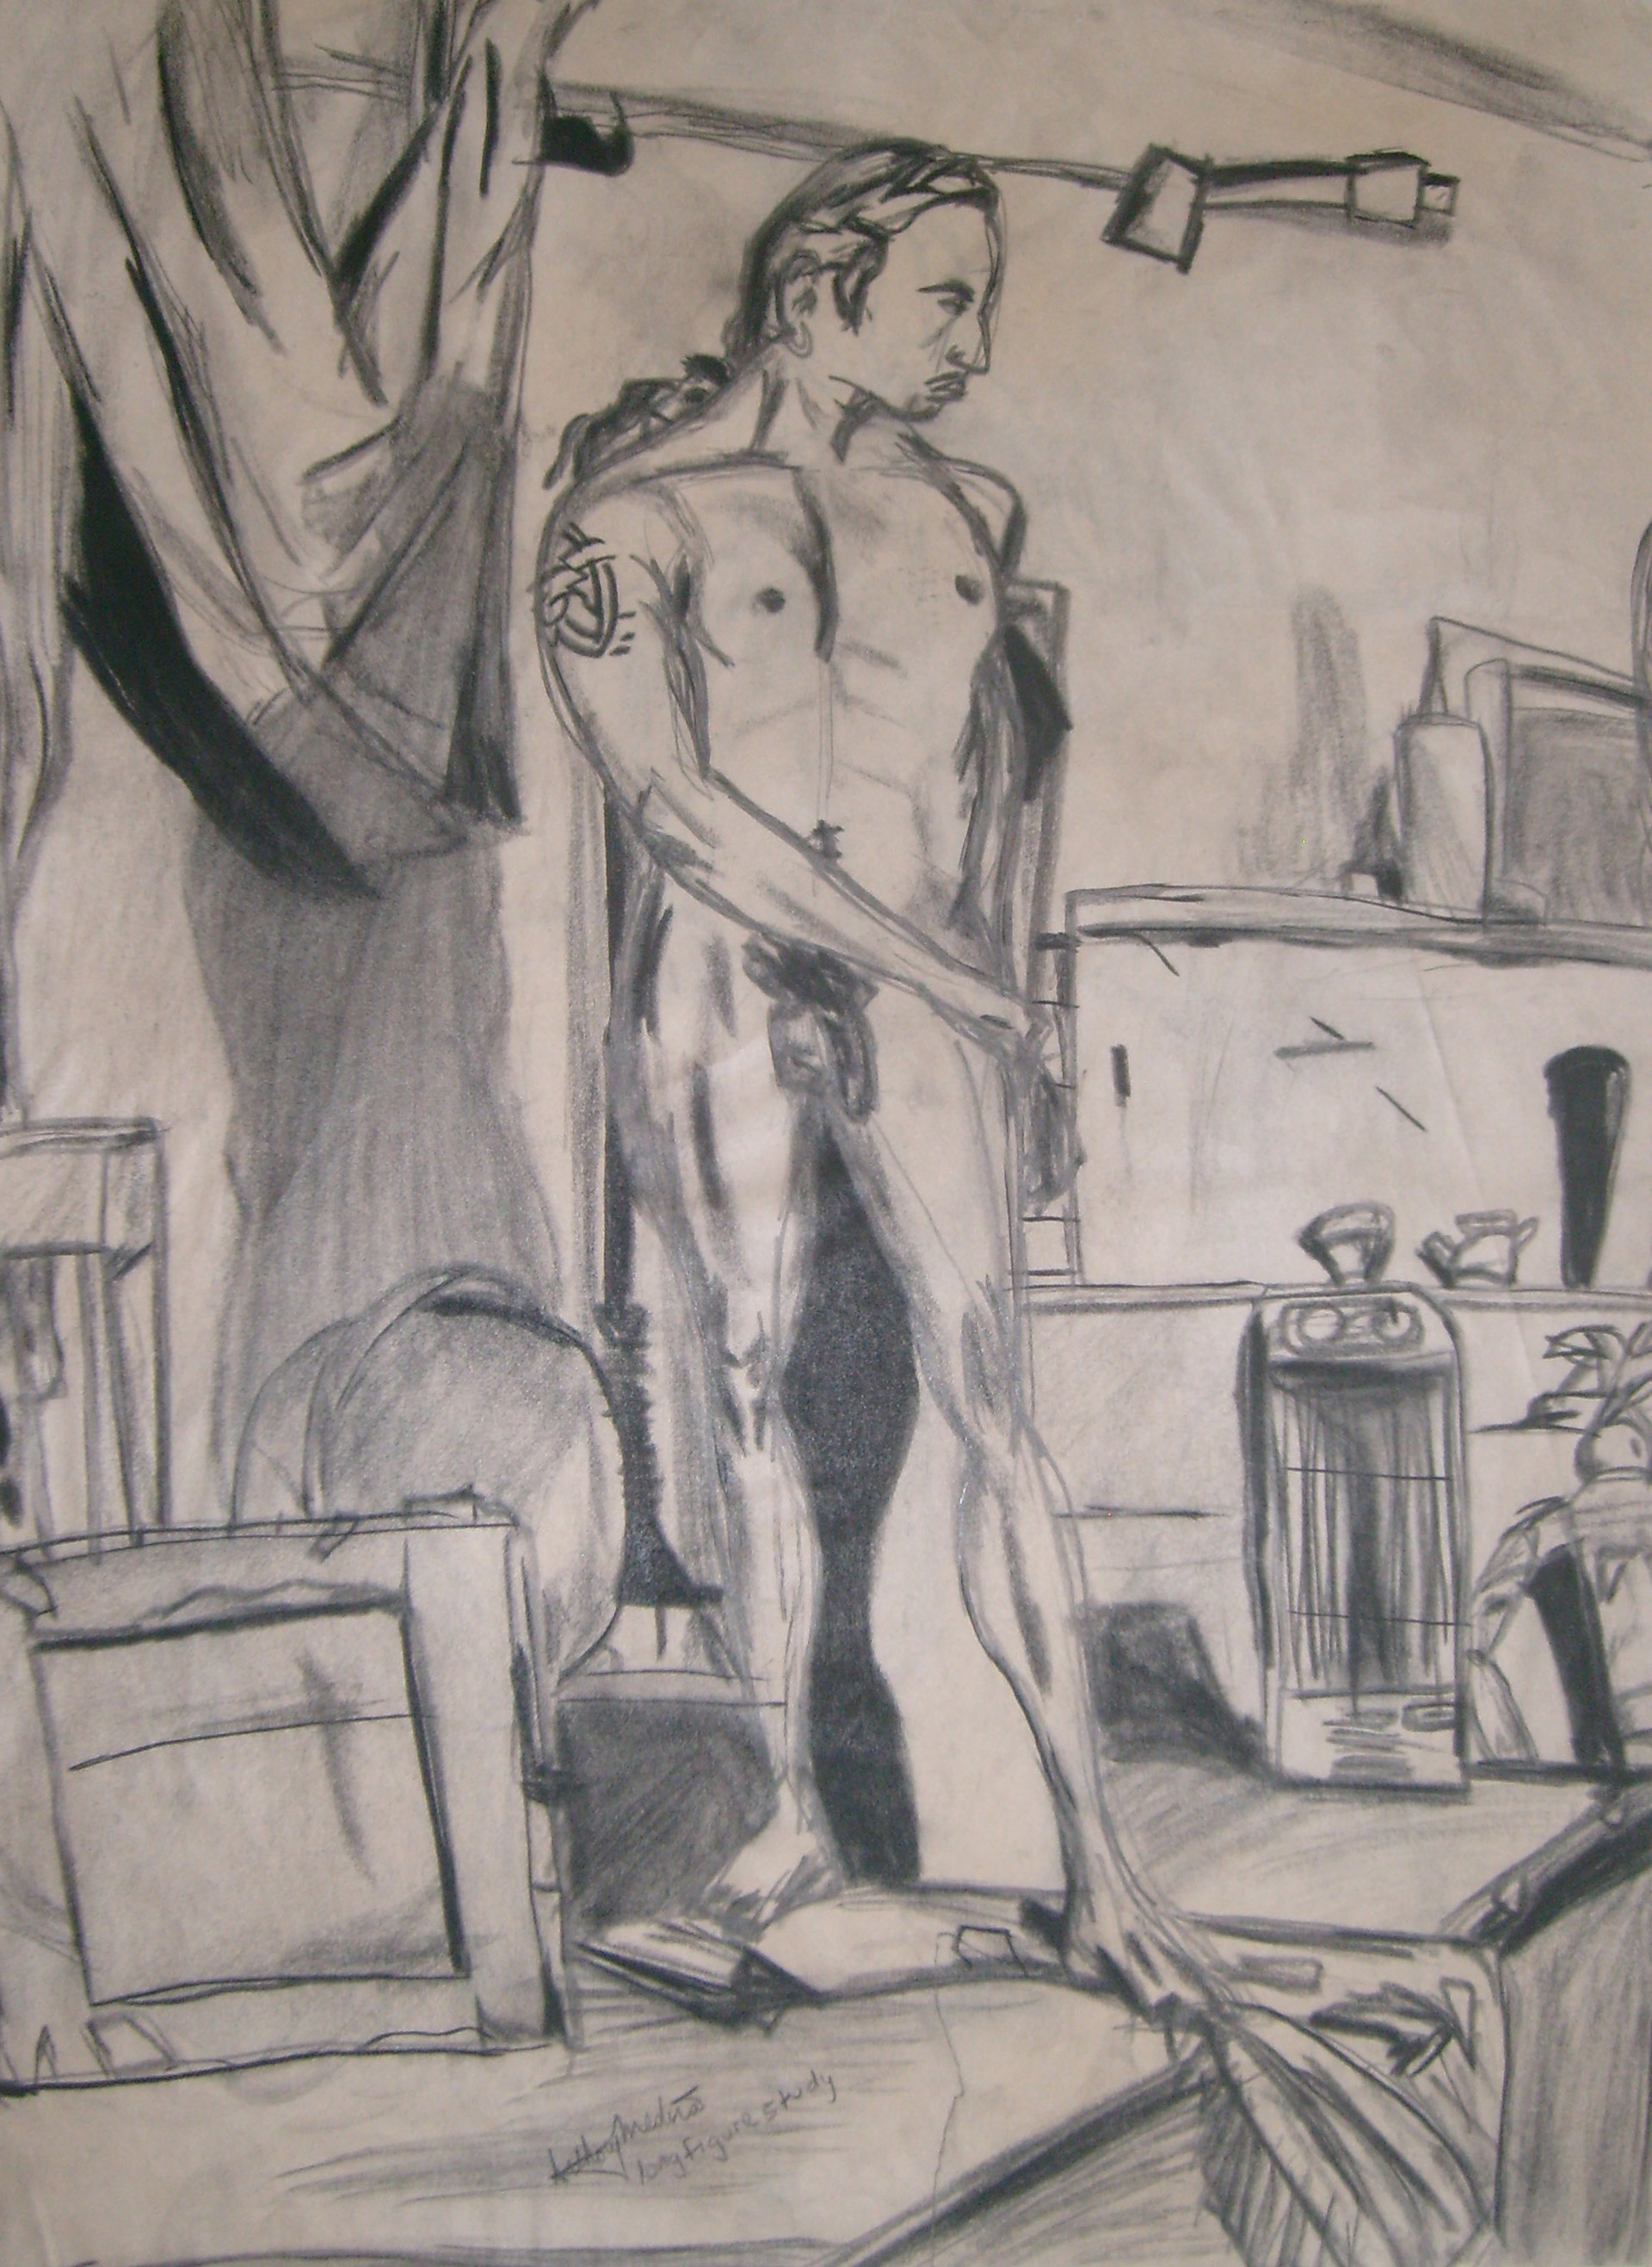 Antonio medina life drawing 002